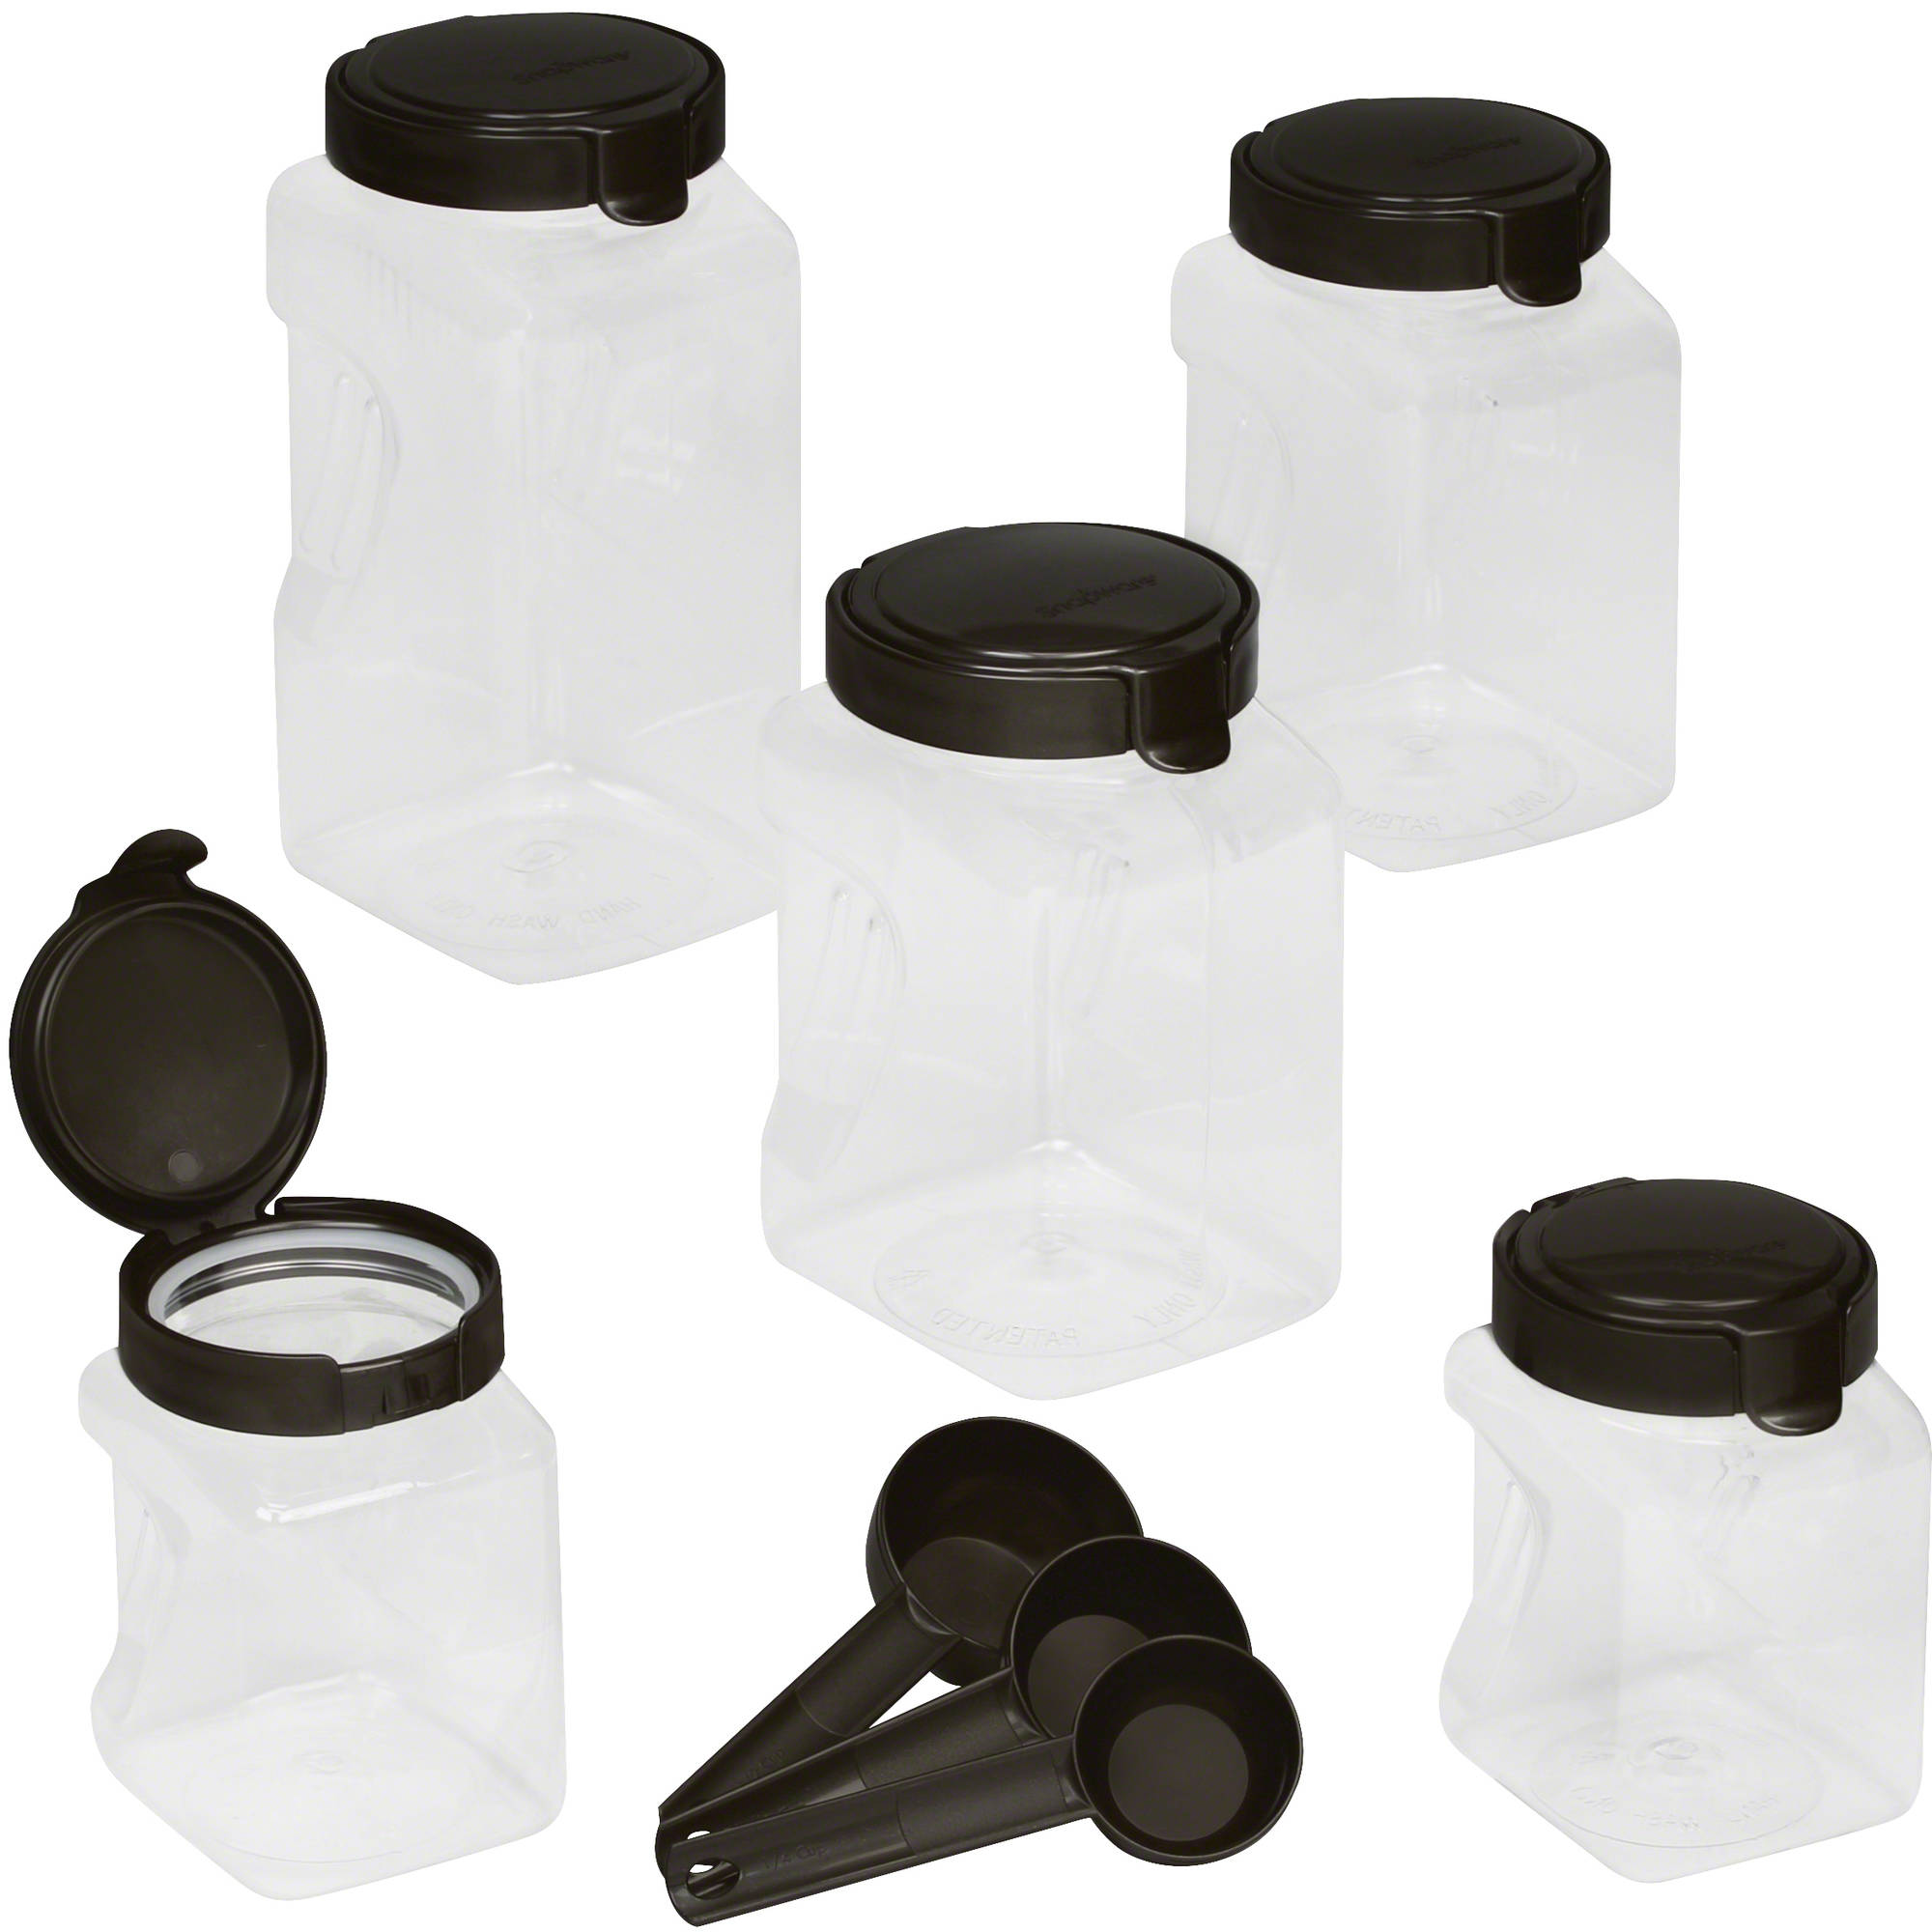 Snapware Airtight 10-Piece Plastic Canister Set, Warm Metallic